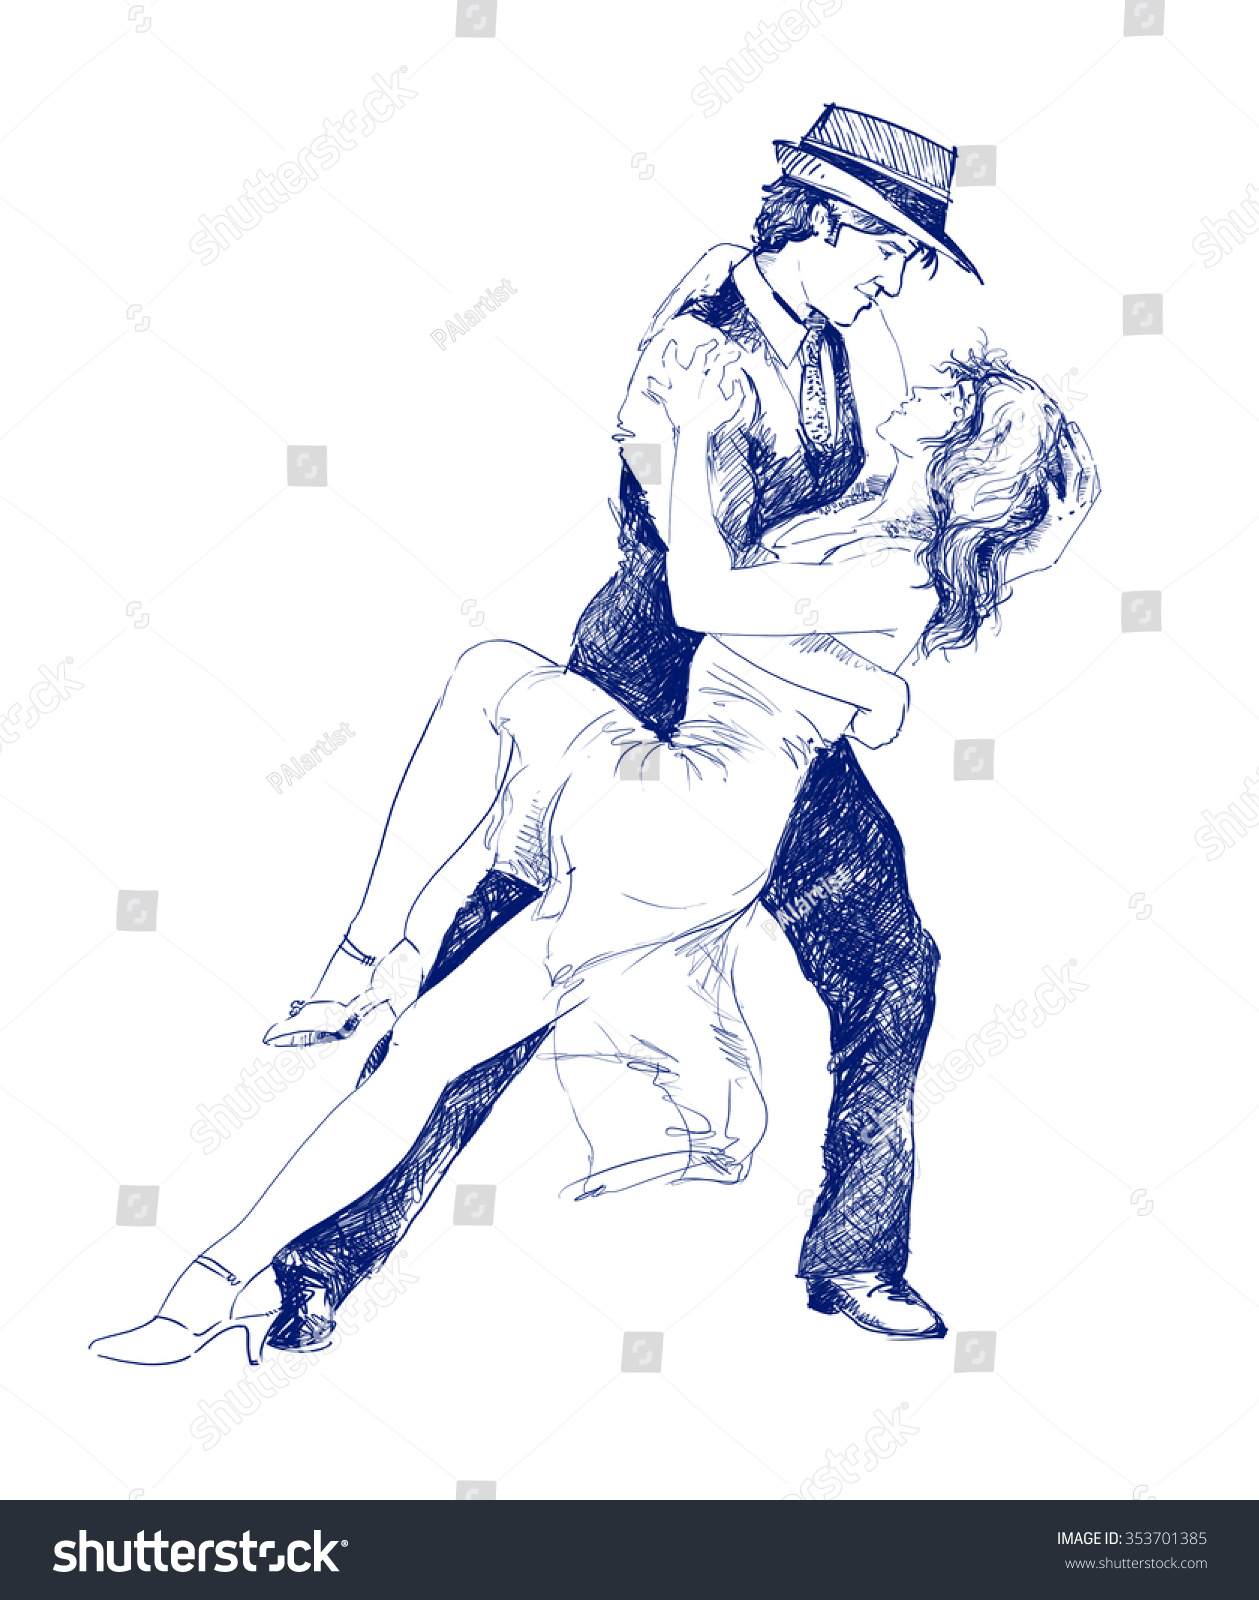 Illustration sketch drawing couple dancing love romance sensual man and woman